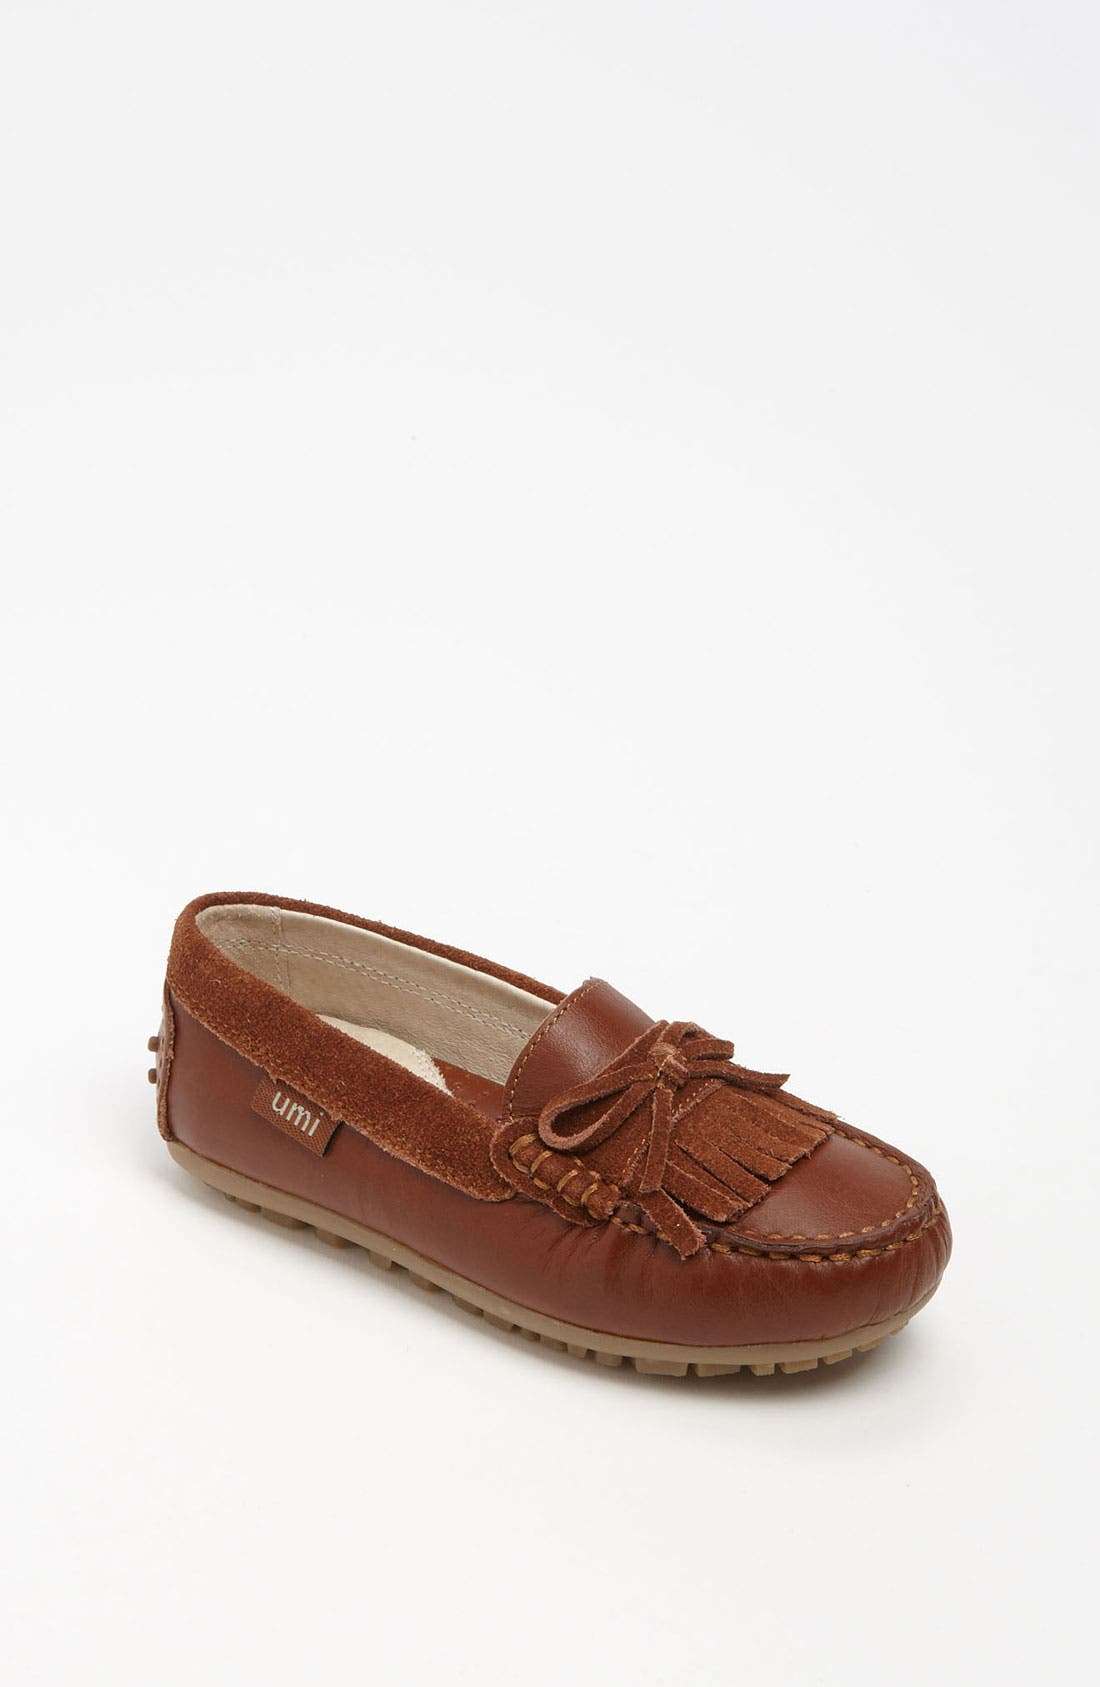 Main Image - Umi 'Monet' Moccasin (Toddler, Little Kid & Big Kid)